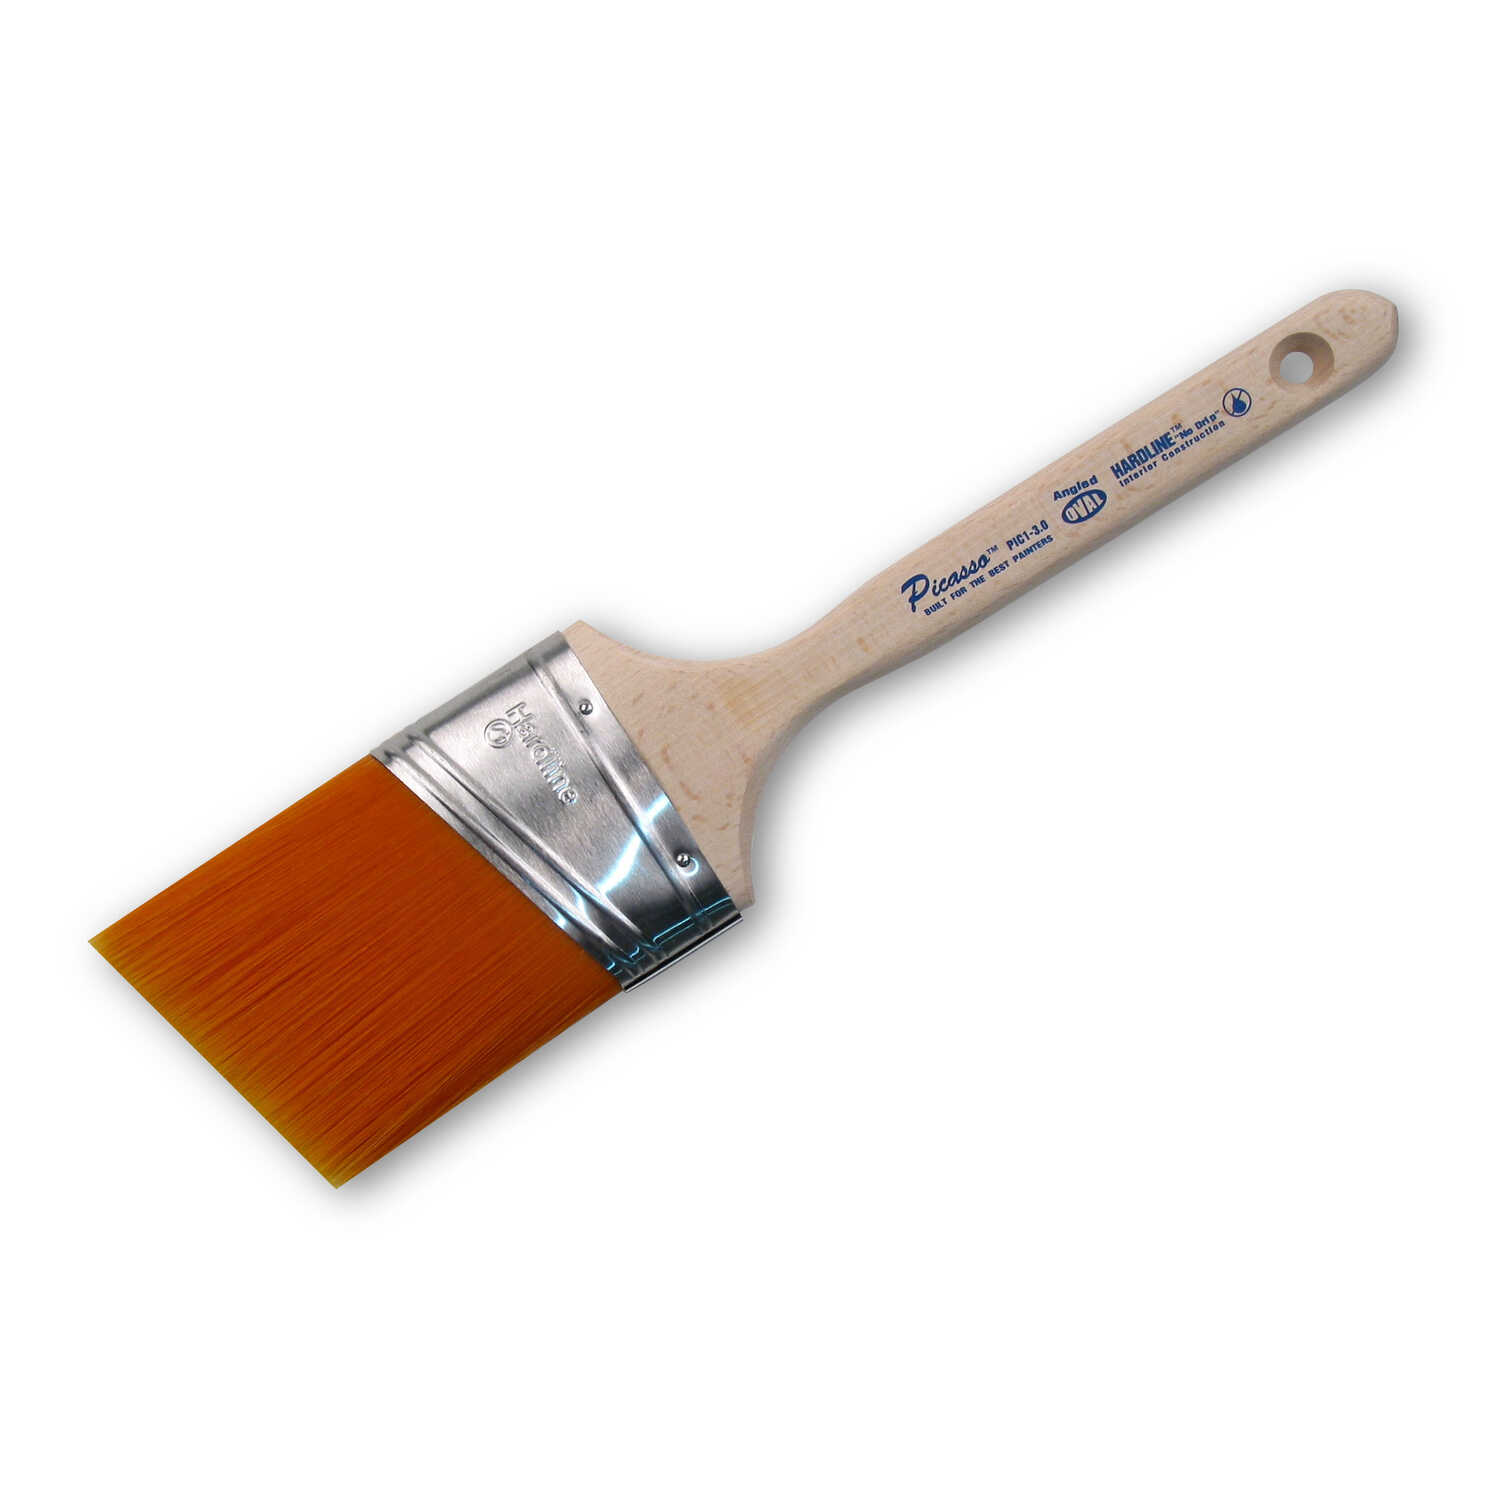 Proform  Picasso  3 in. W Soft  Paint Brush  PBT  Angle